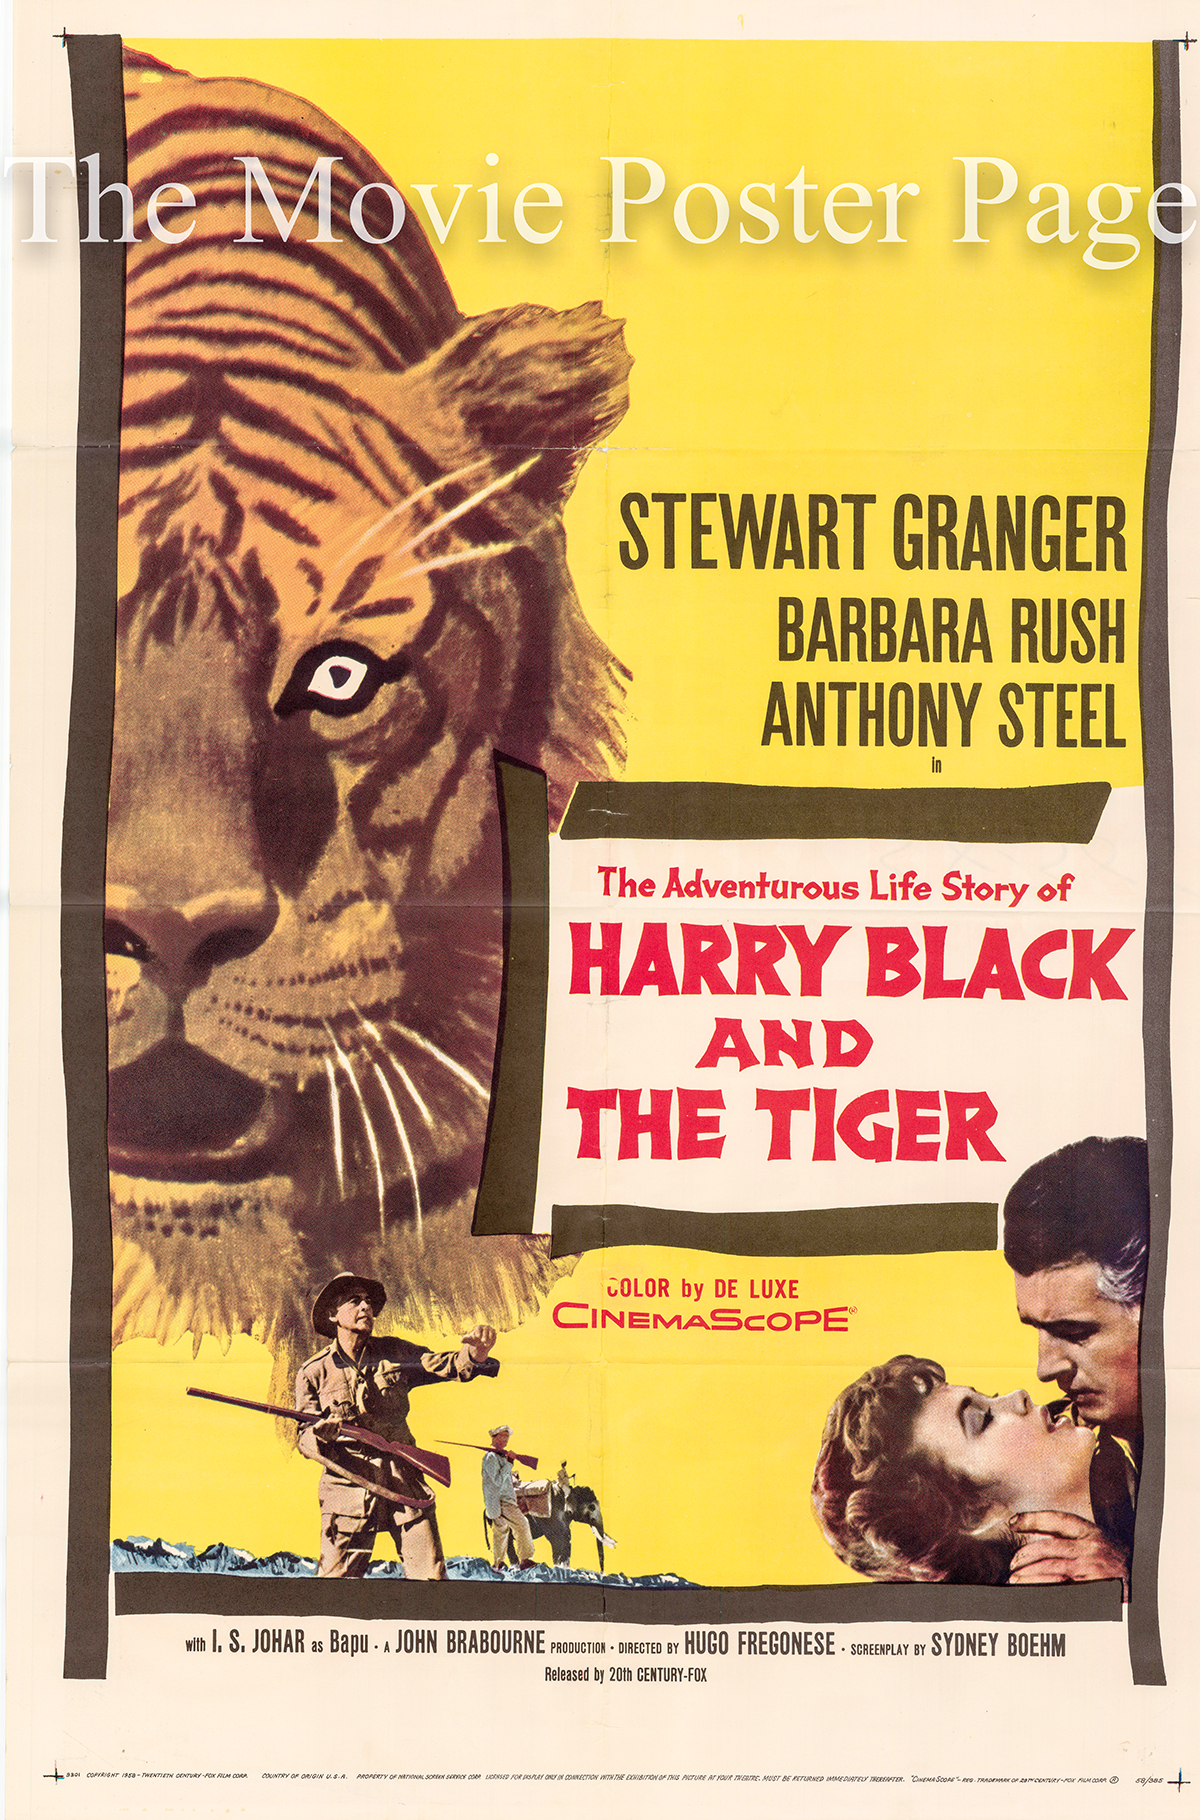 Pictured is a US one-sheet promotional poster for the 1958 Hugo Fregonese film Harry Black and the Tiger starring Stewart Granger as Harry Black.